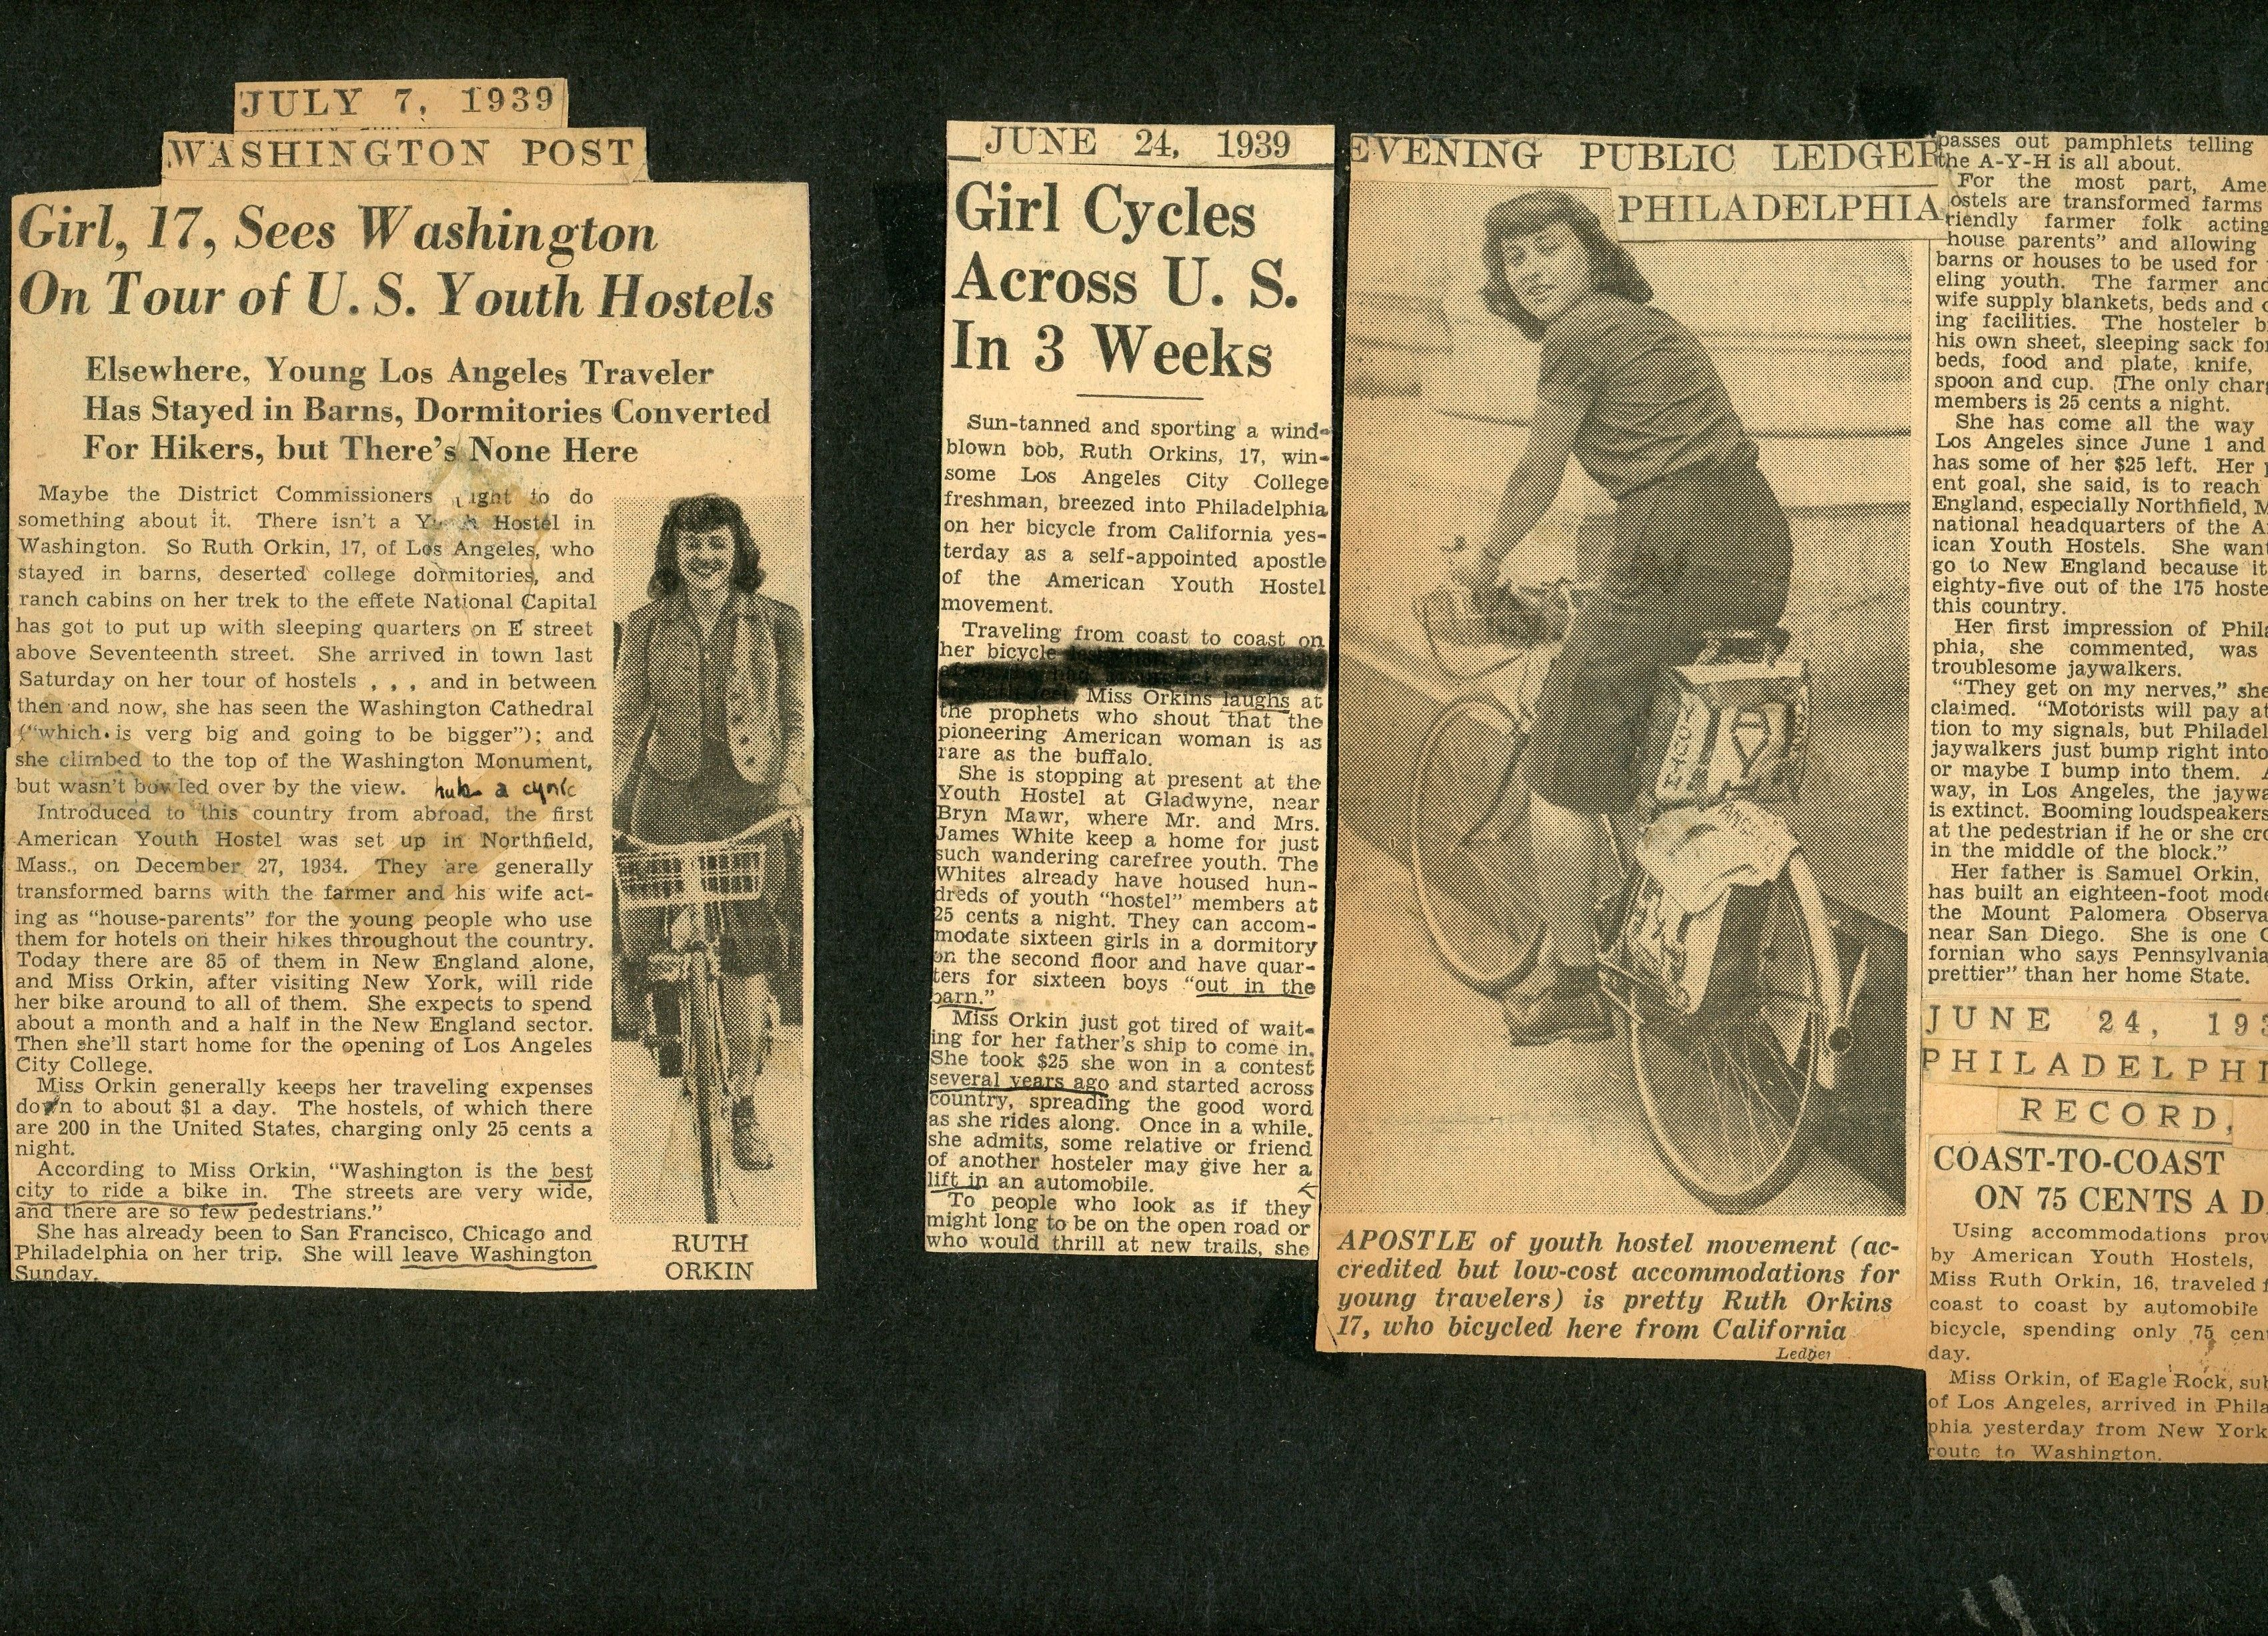 Ruth Orkin rides a bike... from L.A. to NYC to see the 1939